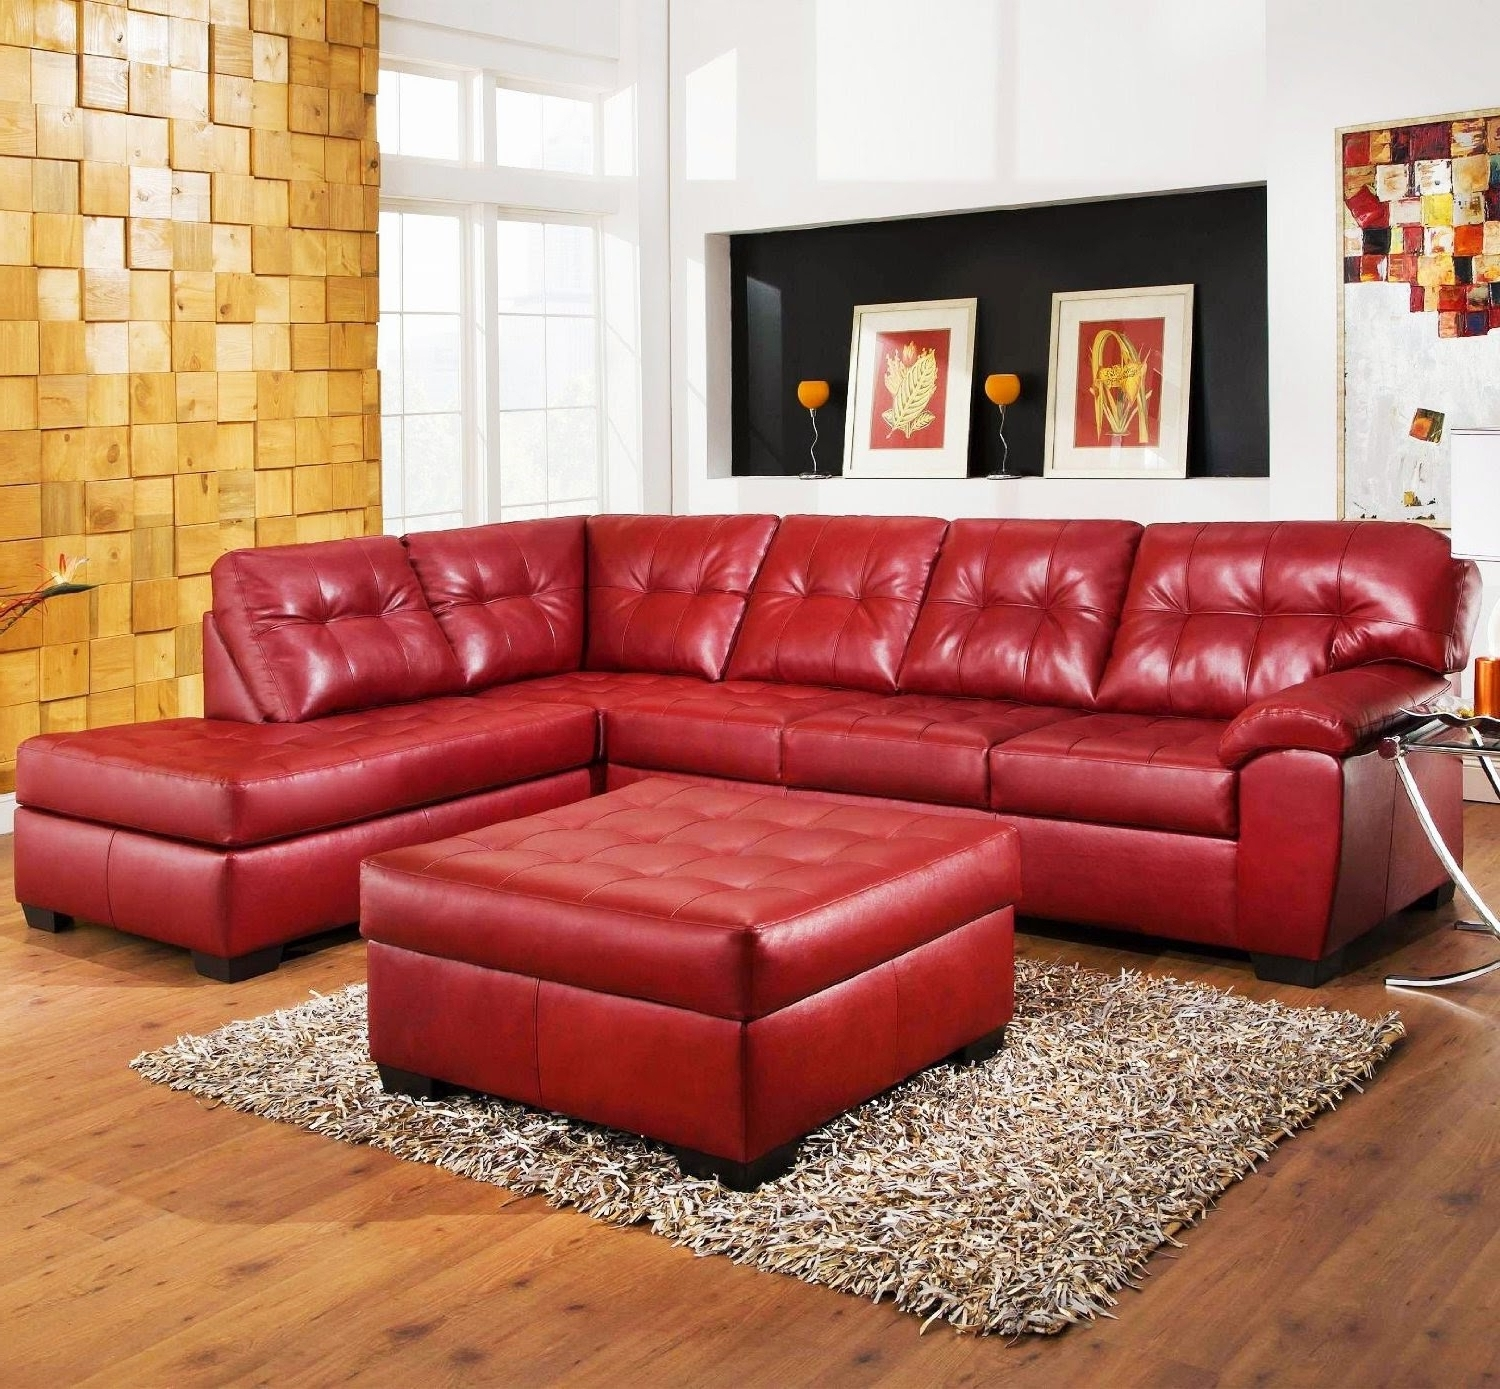 Well Known Sectional Sofas Rooms To Go – Home Design Ideas And Pictures Throughout Sectional Sofas At Rooms To Go (View 14 of 15)